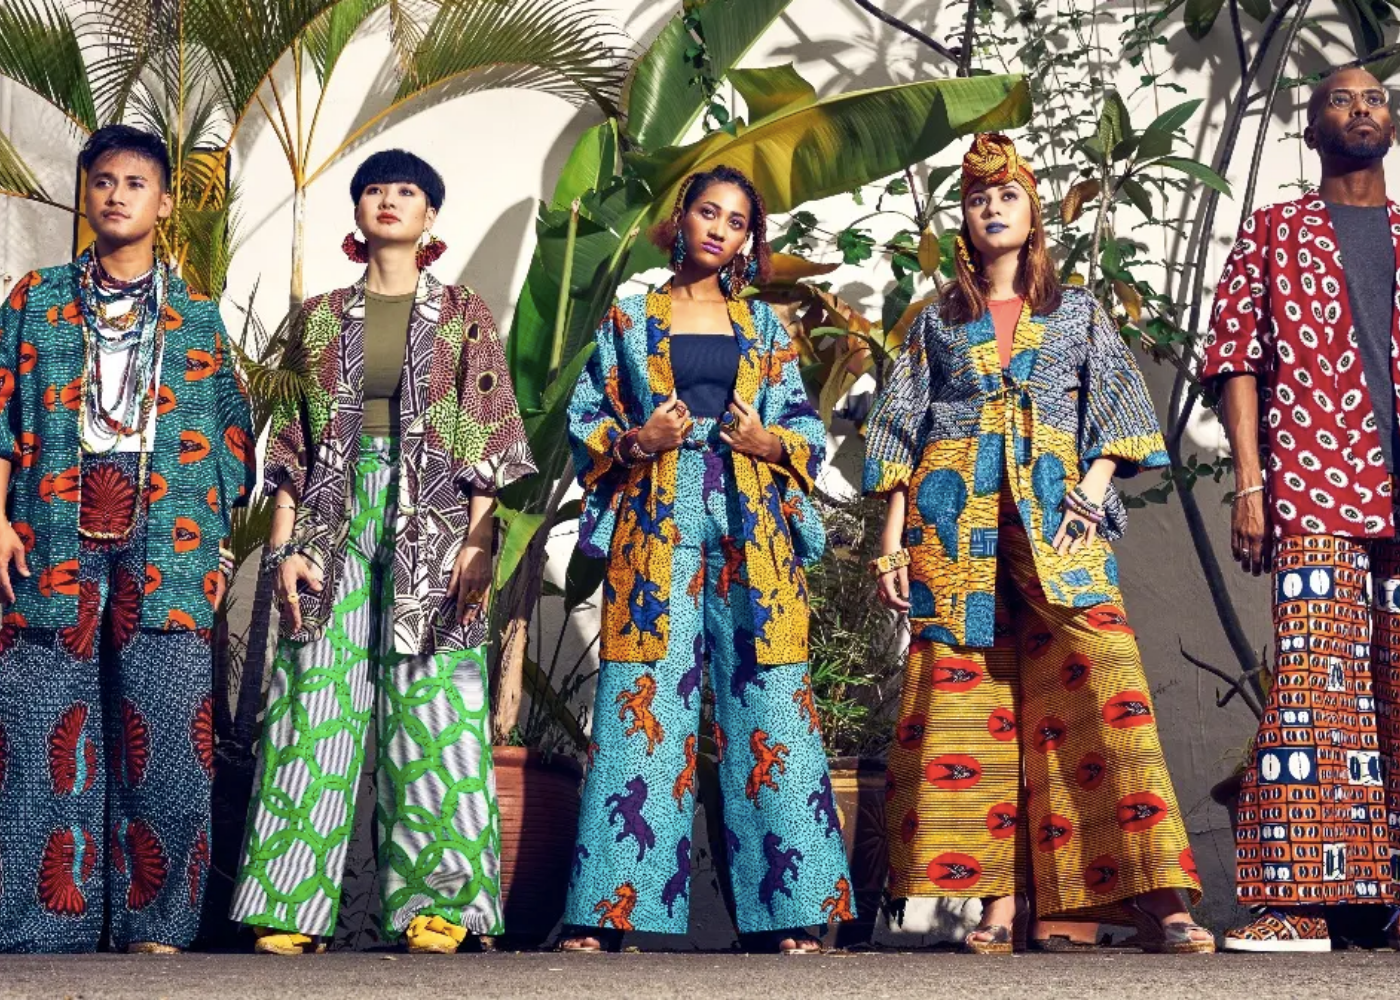 Sustainable fashion and decor in Singapore: Eco-friendly and ethical is the future of shopping